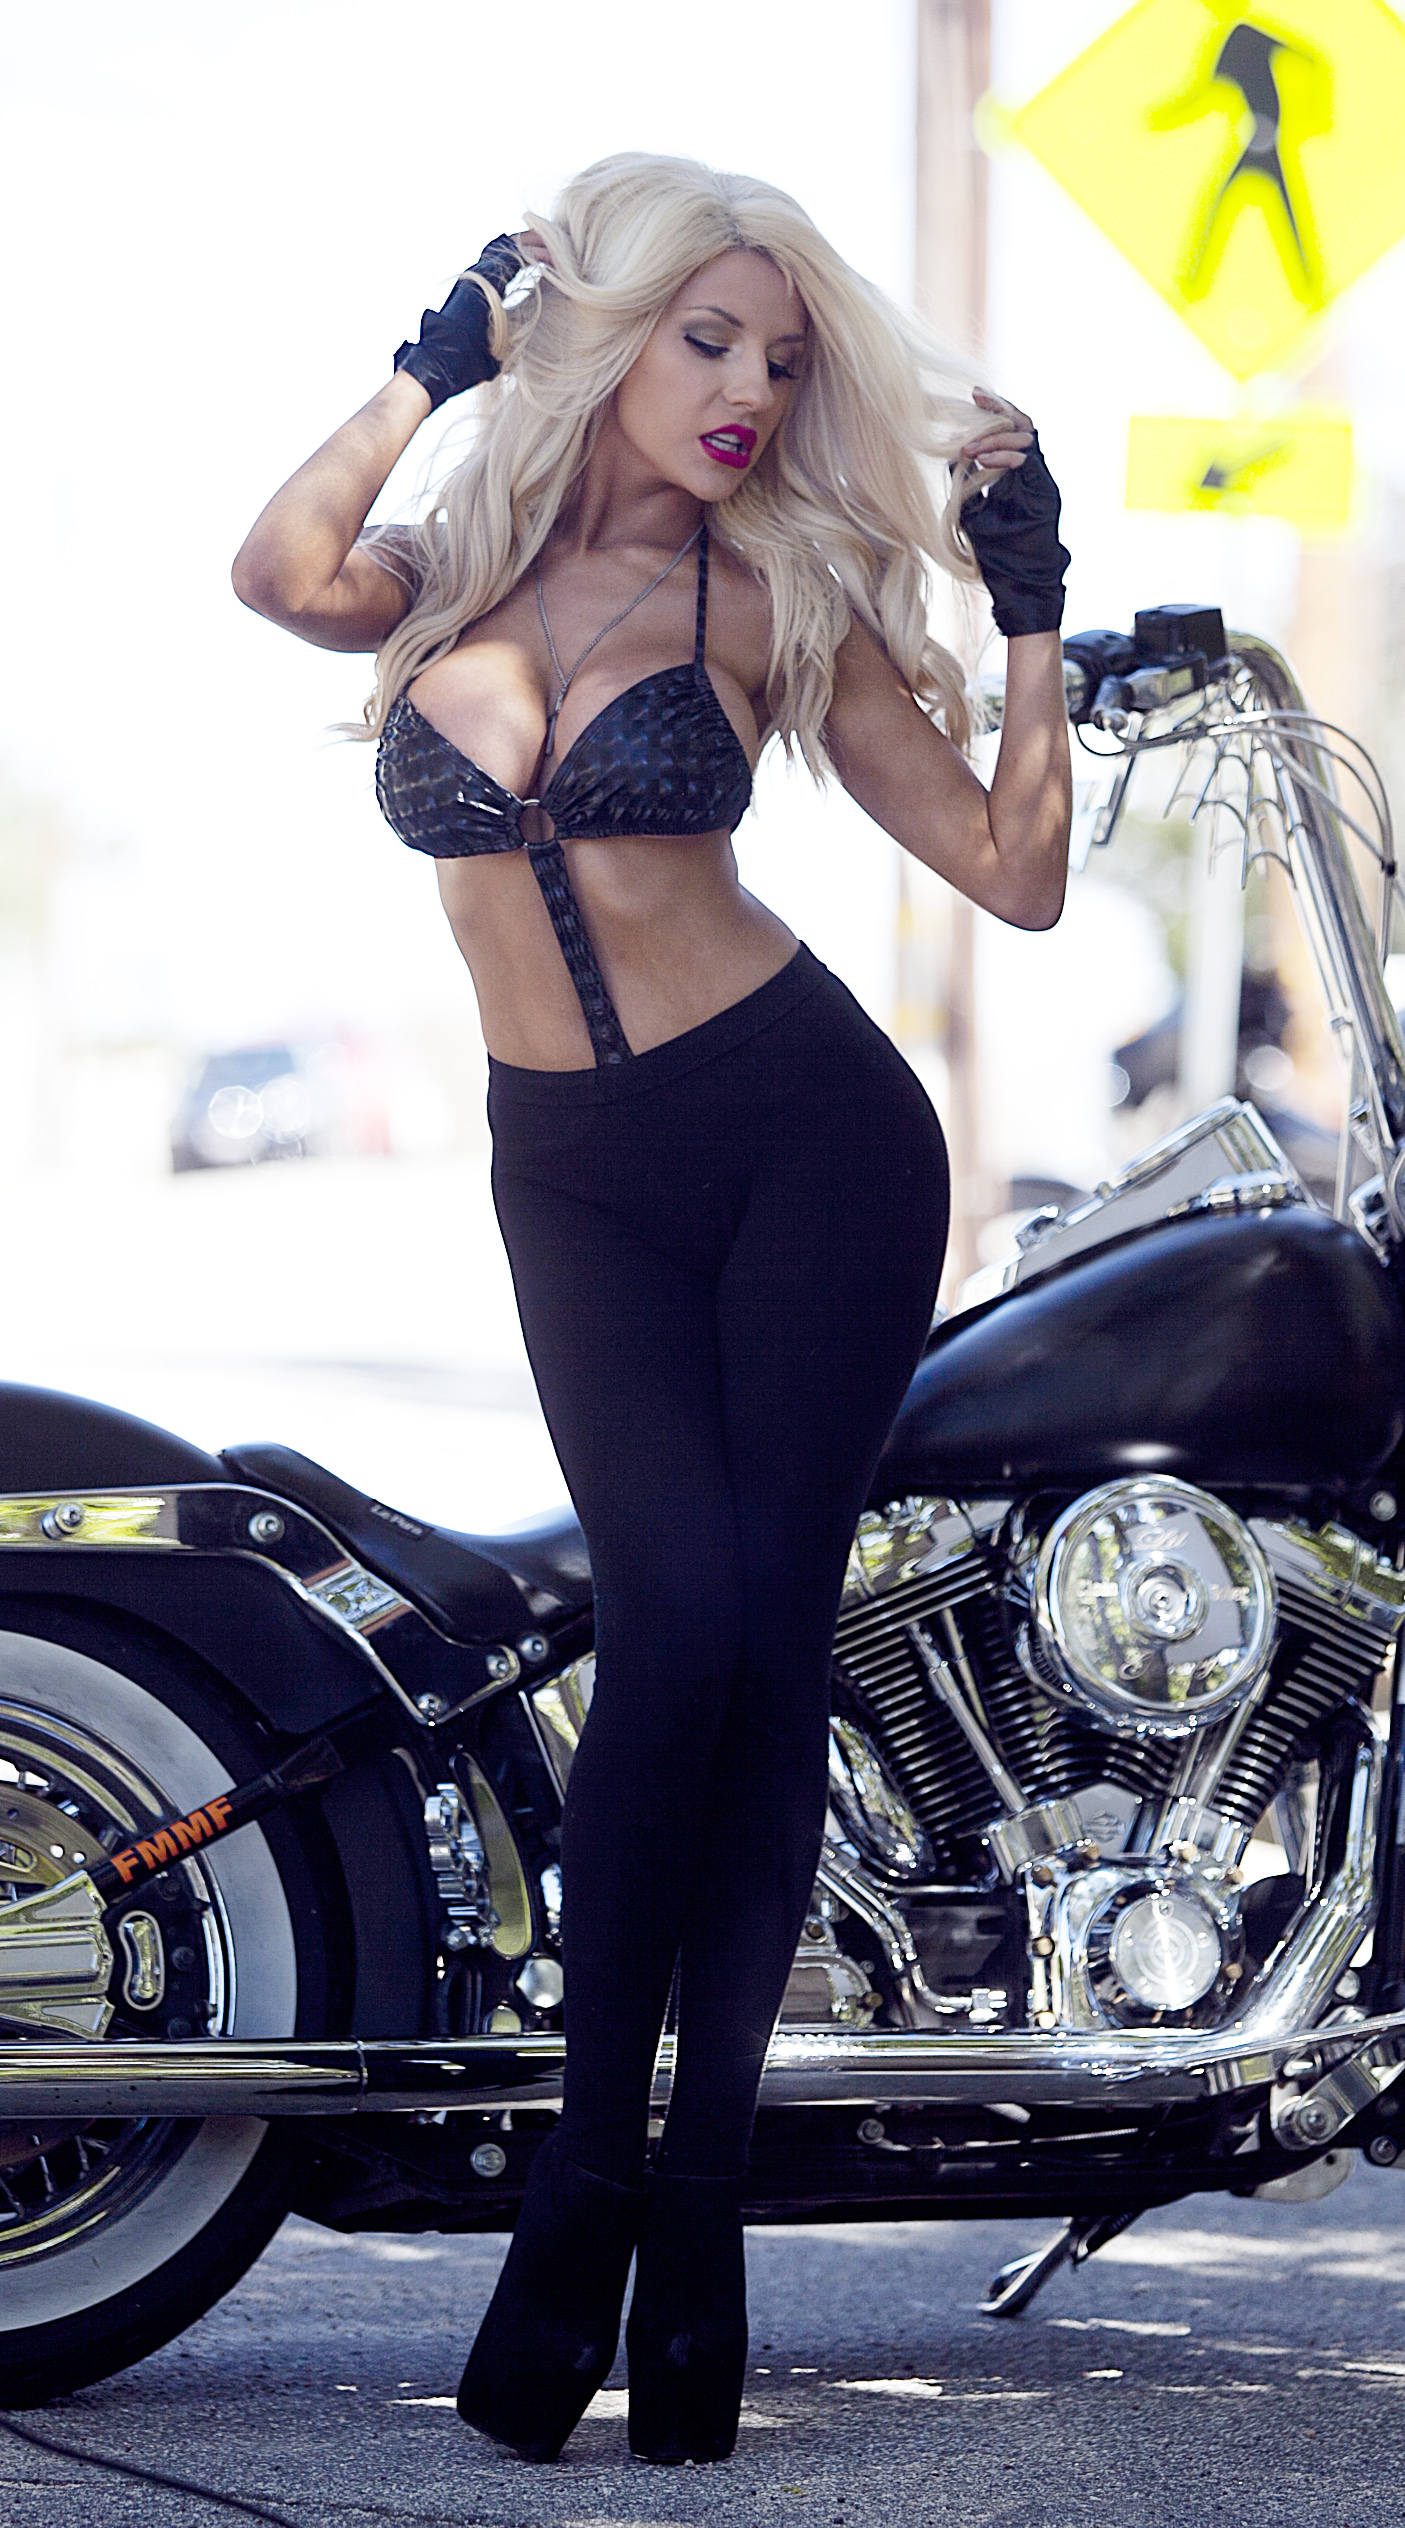 Harley davidsons ladies sexy leather